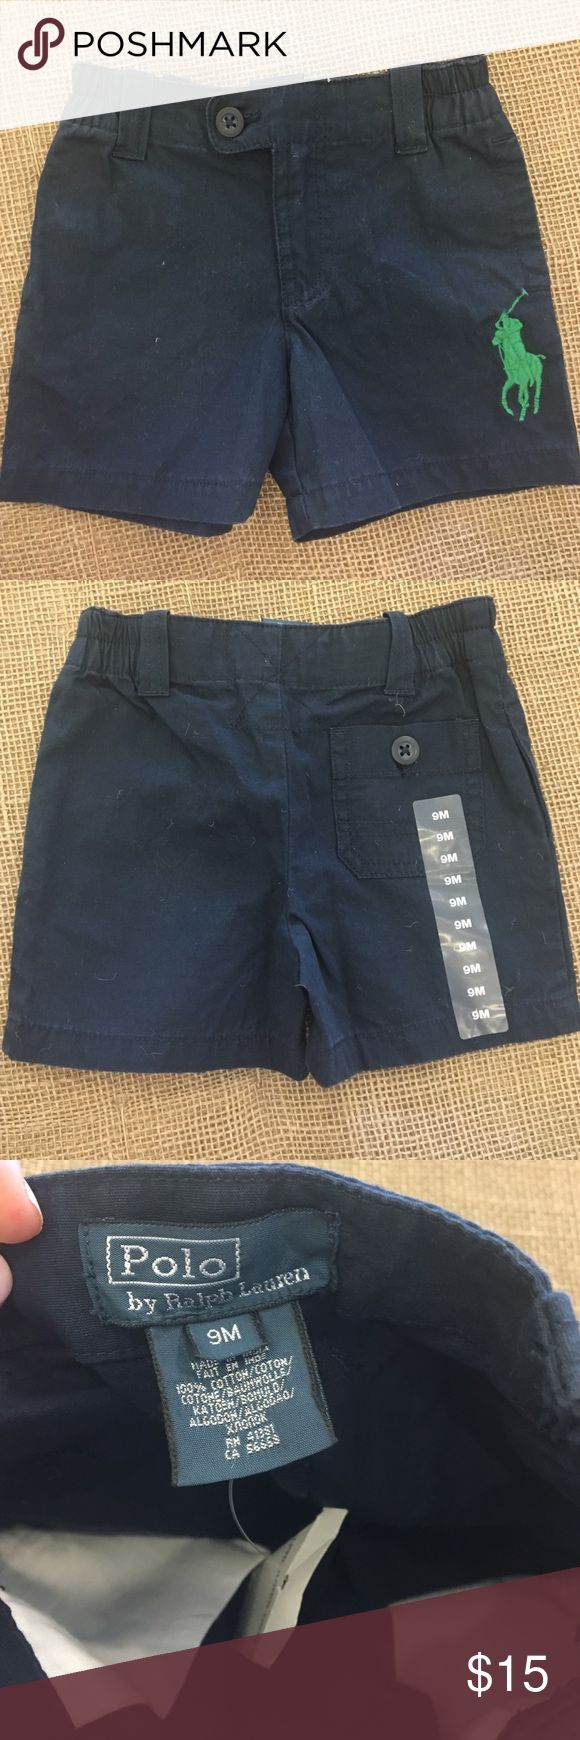 Ralph Lauren Kids Shorts size 9 months. NWT Ralph Lauren Factory Store Shorts in Navy with green polo emblem embroidered on left leg. Great fit and very comfortable for little ones. Runs a little small. Polo by Ralph Lauren Bottoms Casual